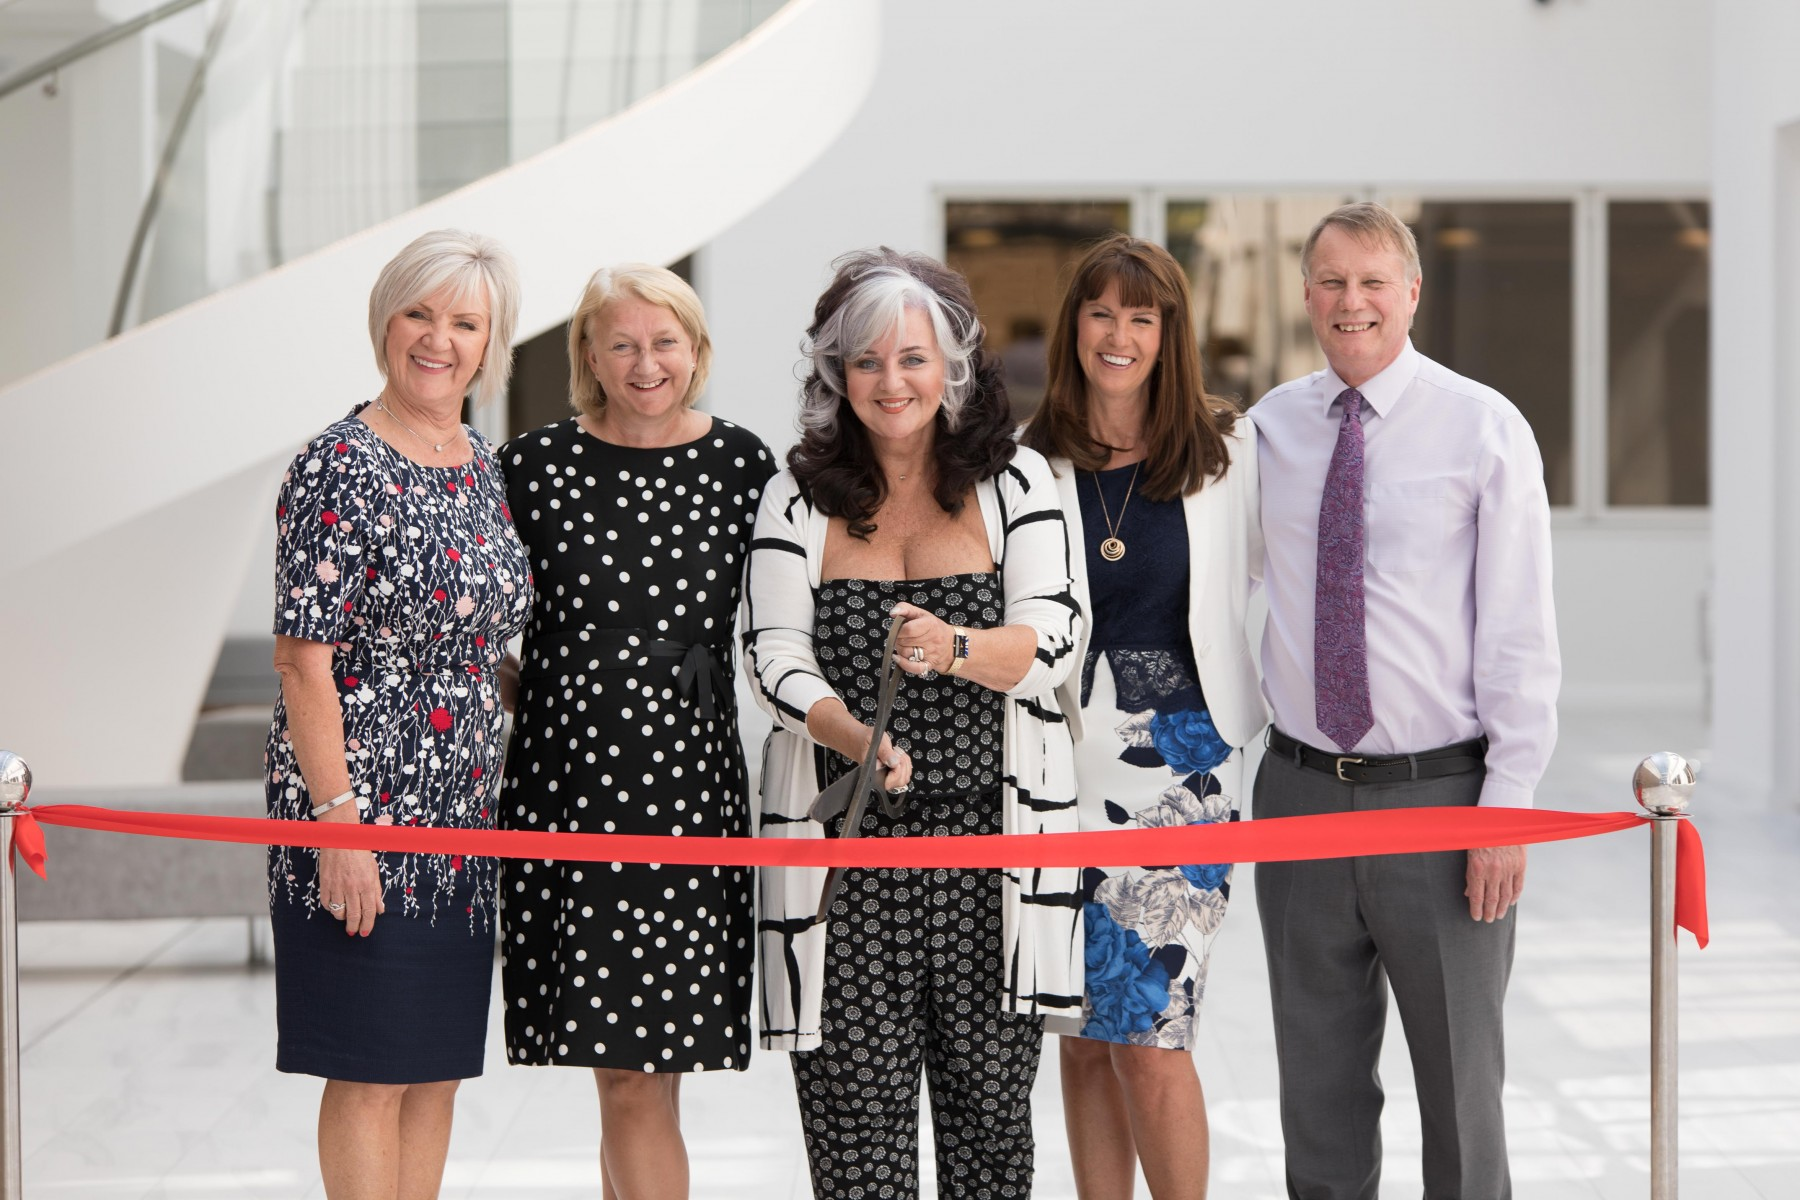 Slimming World founder Margaret Miles-Bramwell OBE and company directors cutting the ribbon at Slimming World's new head office extension